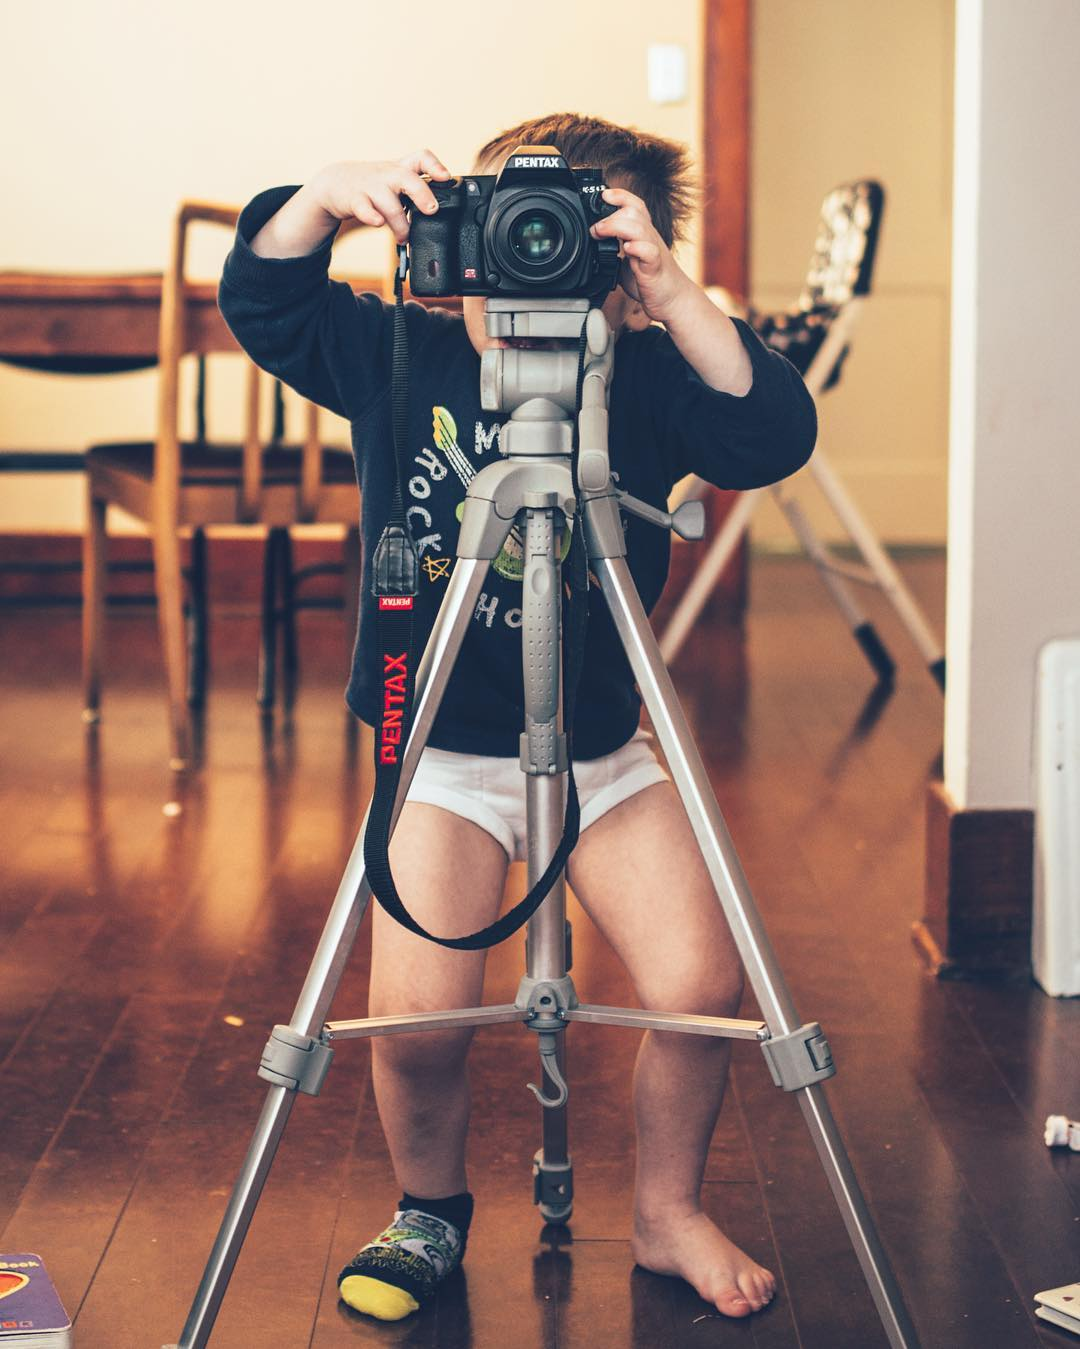 taught-this-little-photog-the-basics-of-how-to-use-a-camera-this-morning-yes-hes-got-major-bed-head-no-pants-and-only-one-sock-on-usually-the-model-is-the-one-in-their-underwear-but-not-today-welcome-to-our-family---aksarbenliving-mi_25022151136_.jpg